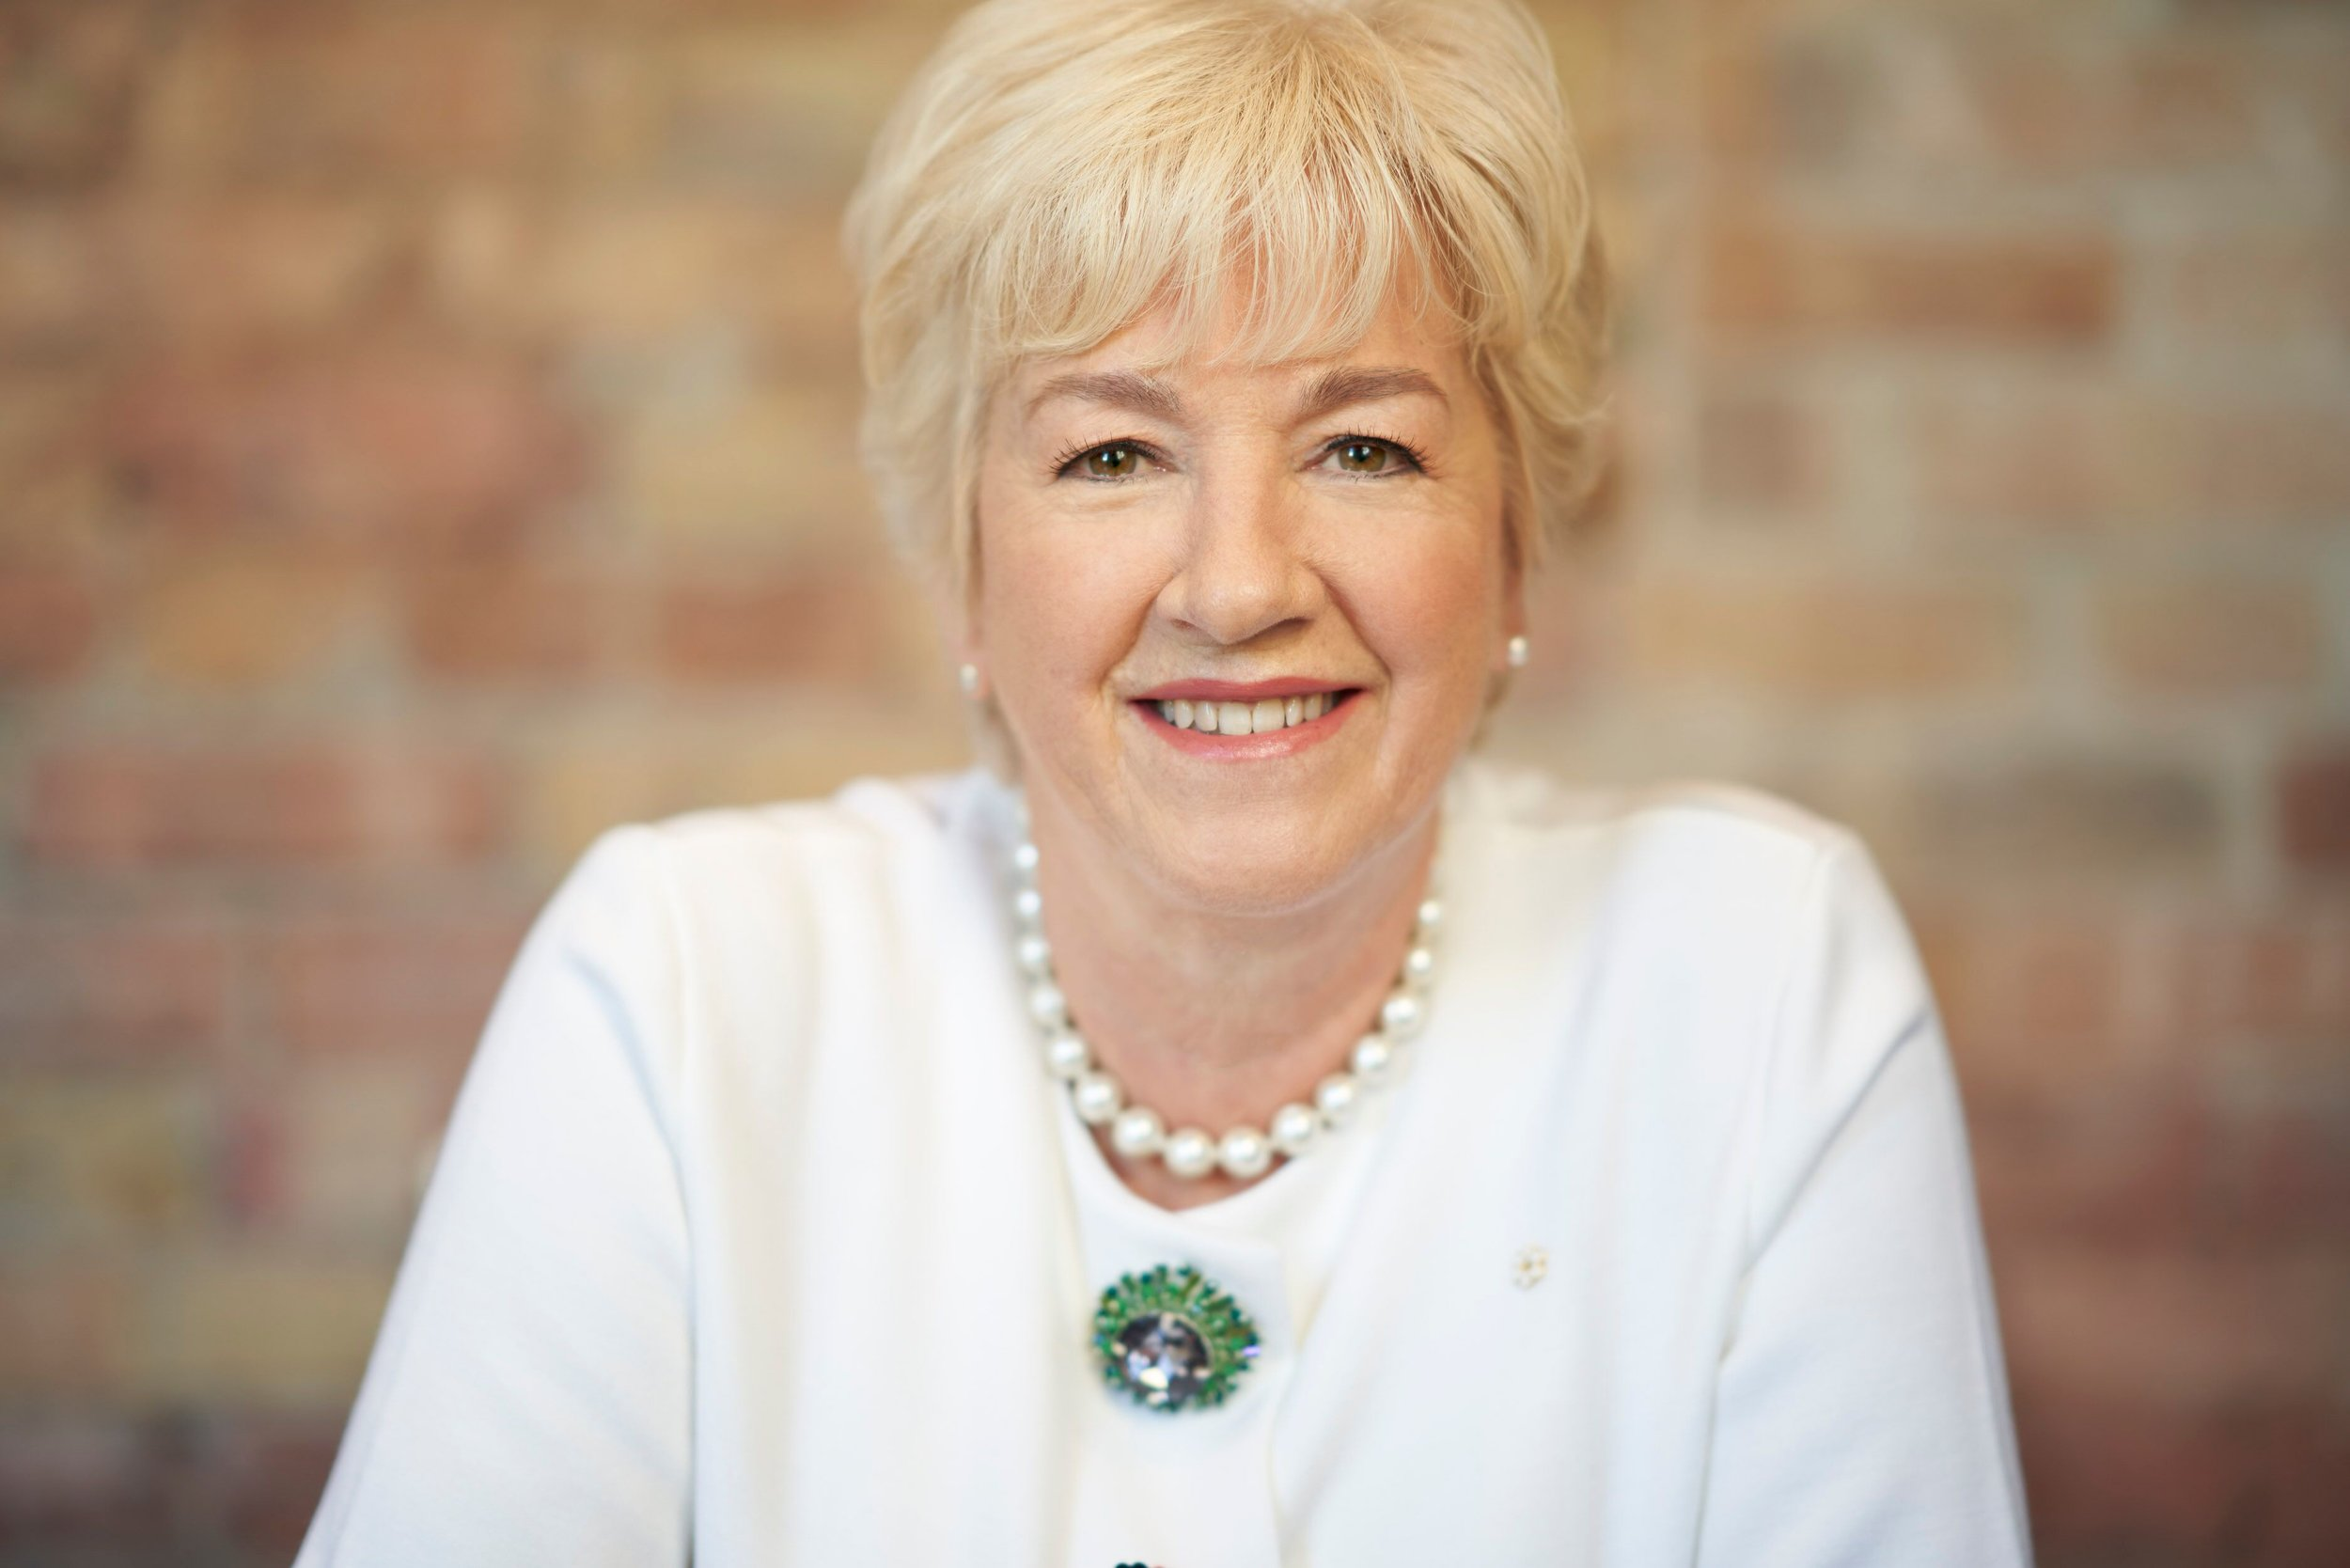 Annette Verschuren - Chair & CEO, NRStor Inc.Verity Member for 13 yearsShe's sought after by Leaders from around the world. And no wonder. She knows her stuff…and heading up Home Depot Canada was just the start. She's down to earth, smart, and has a great sense of humour. You can catch her laugh at George.